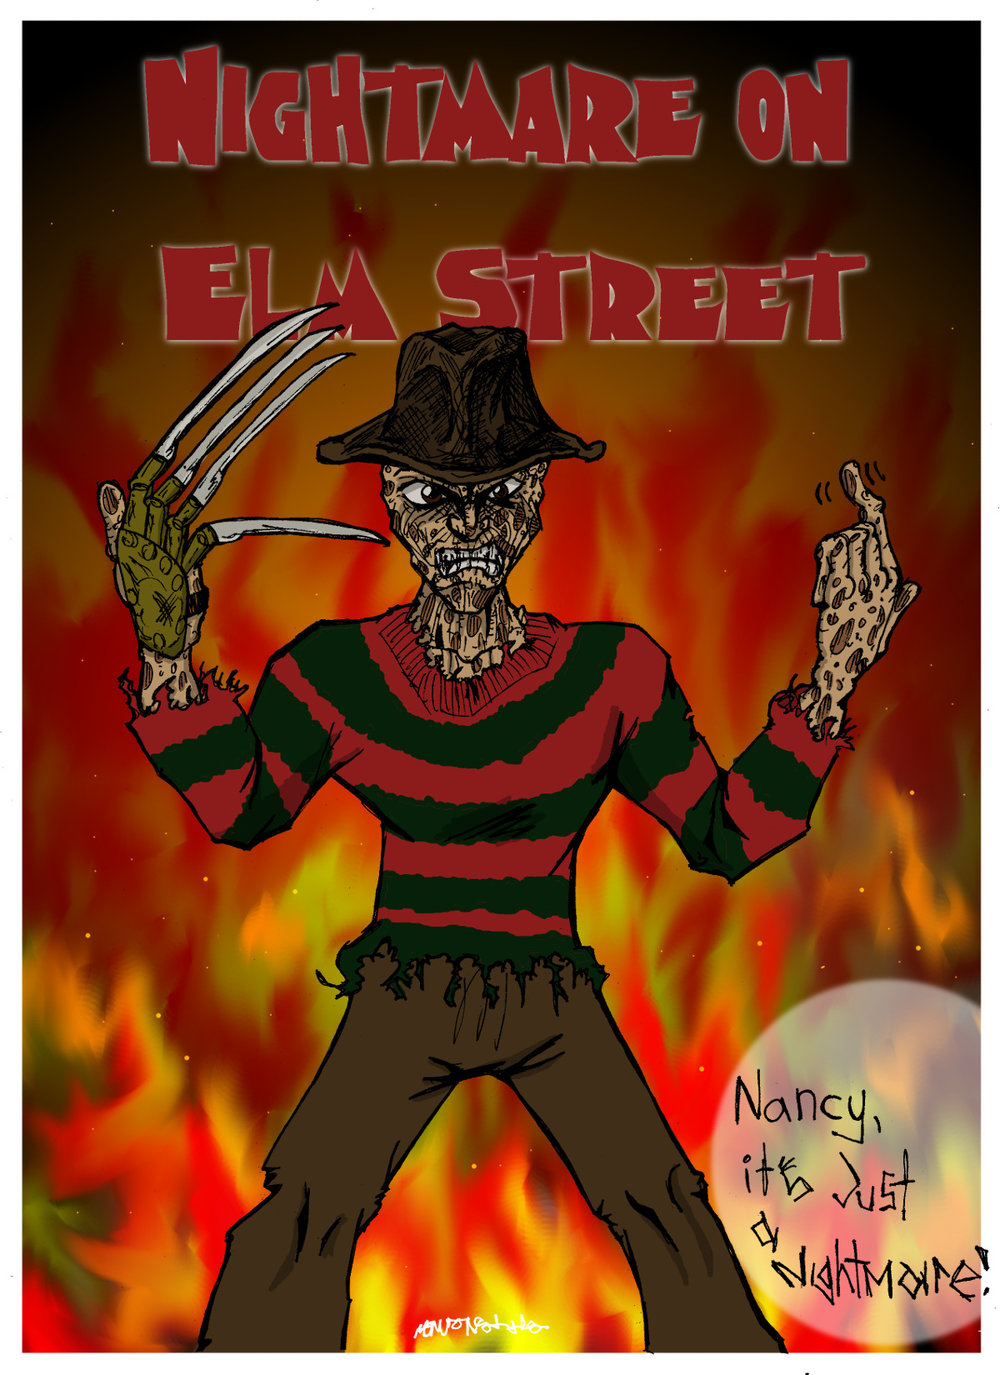 1,2, Freddy's coming for you...